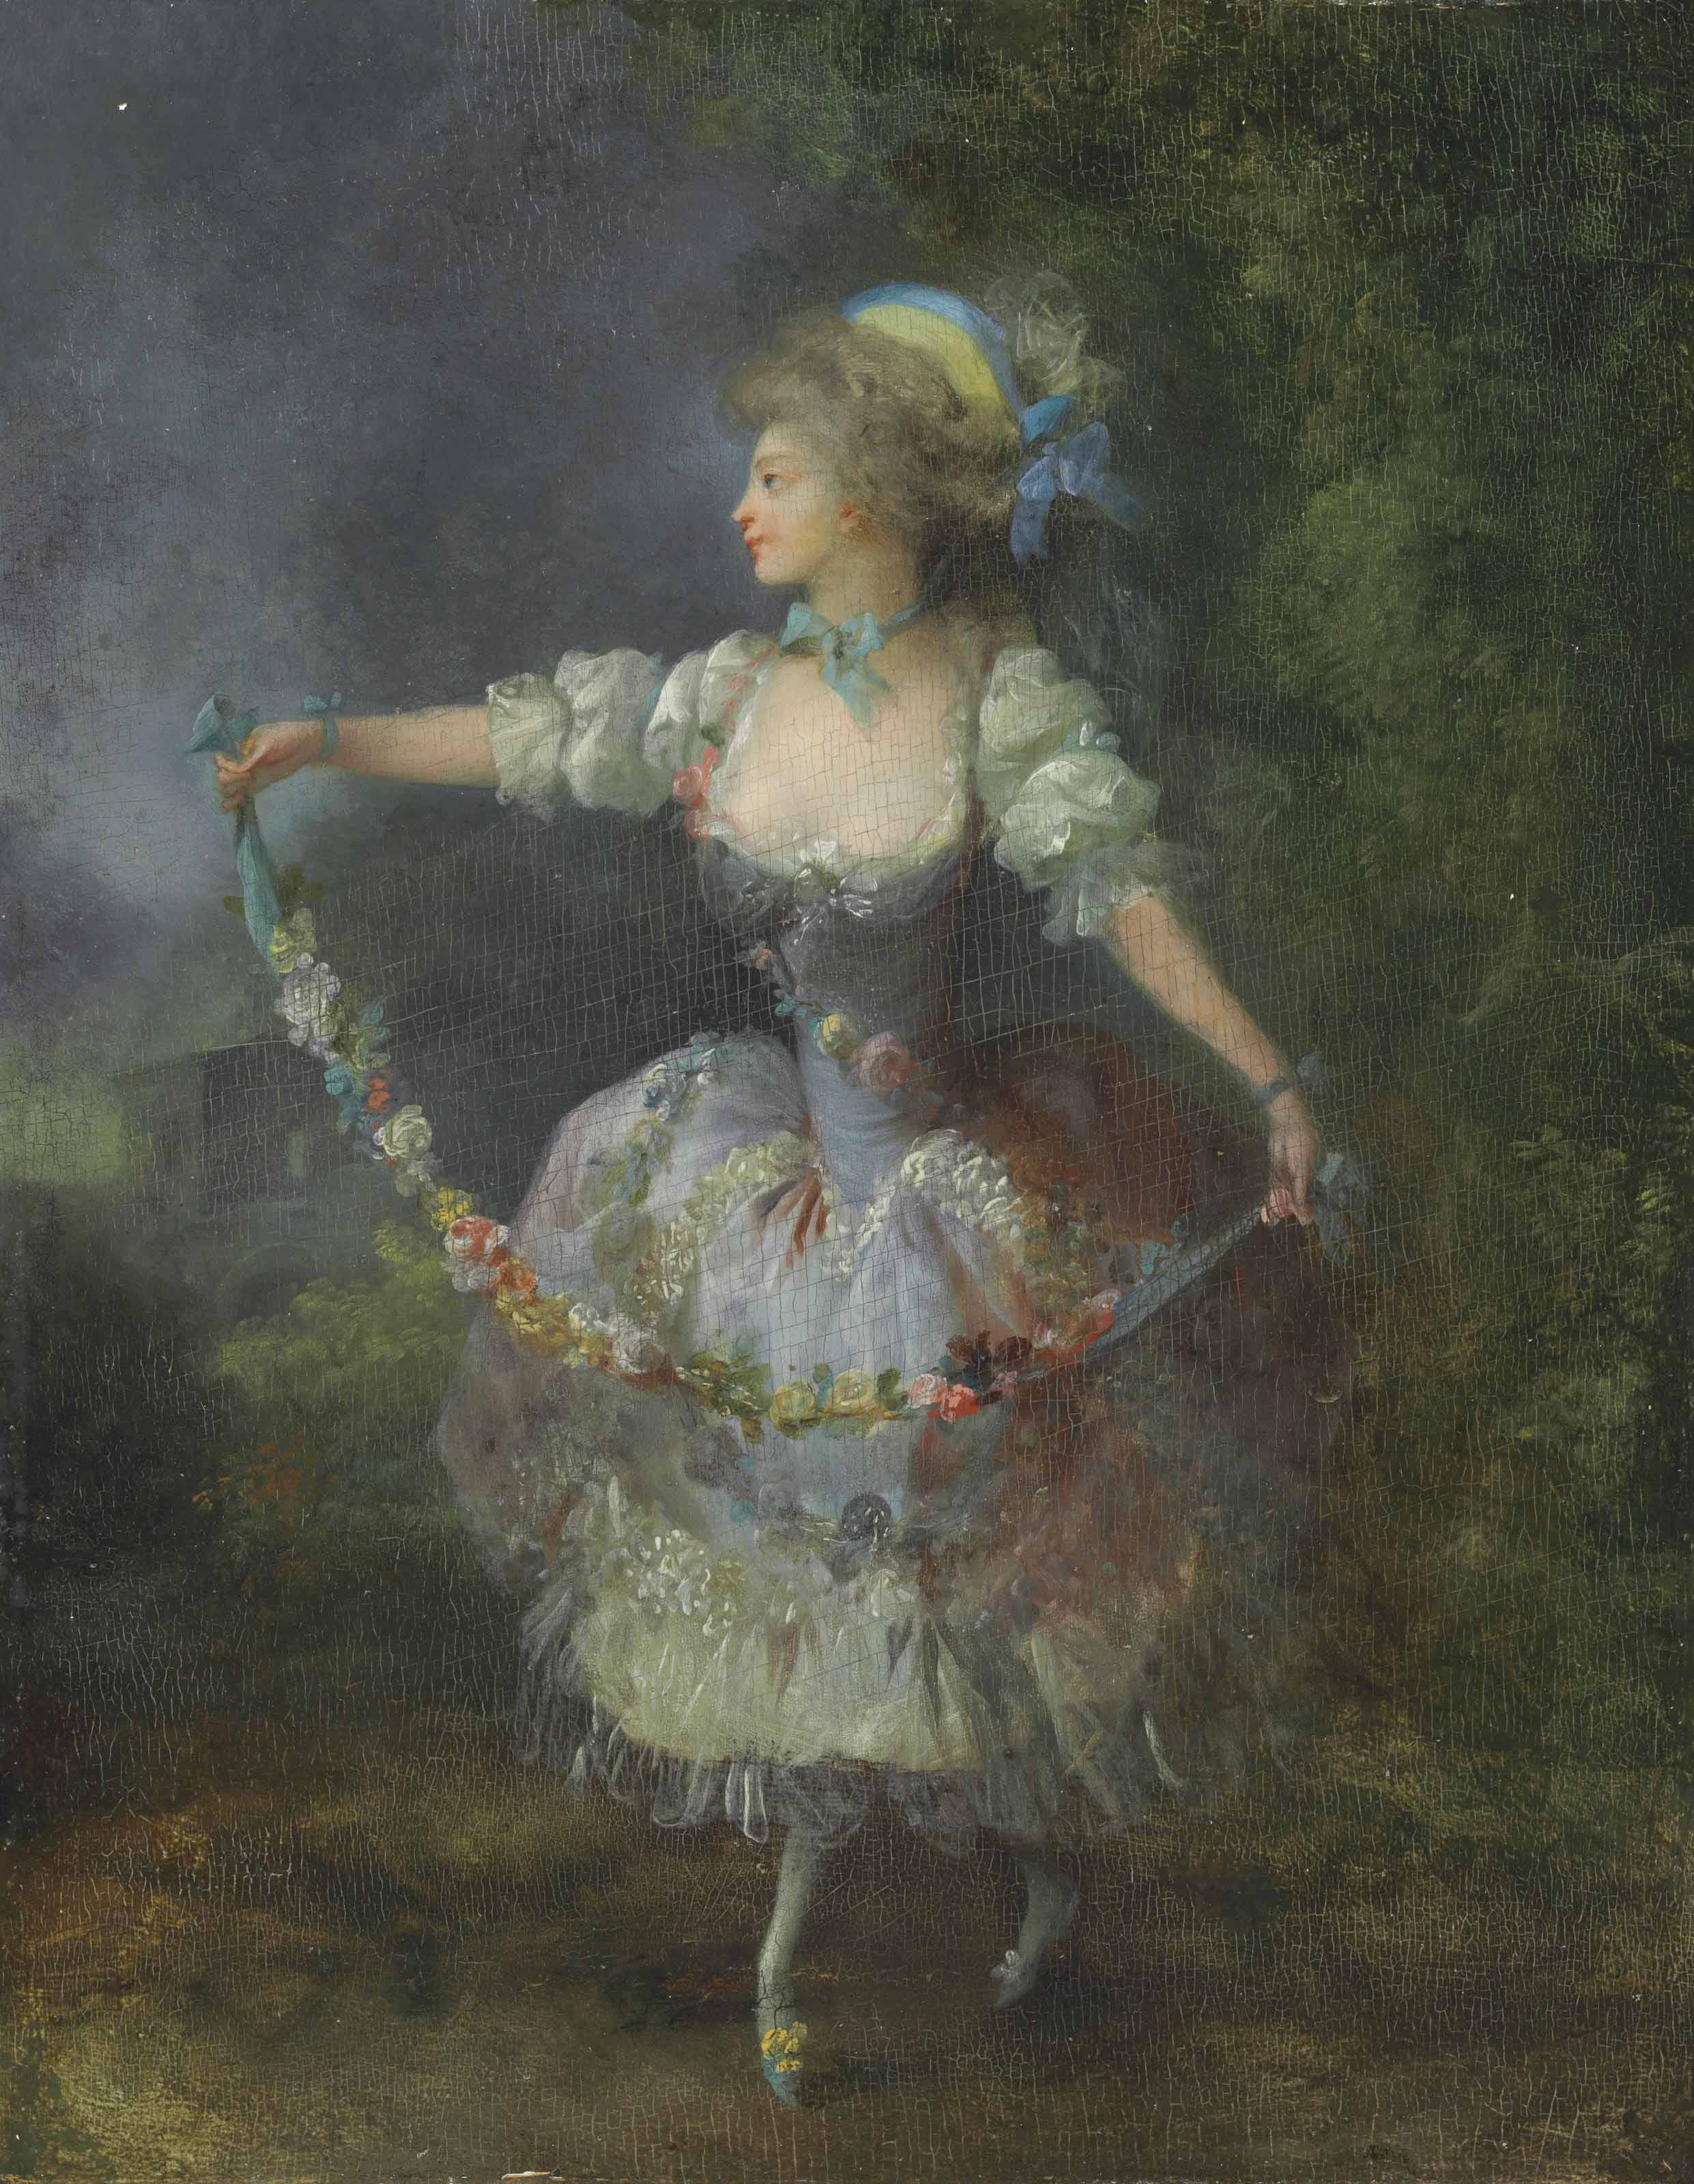 A girl dancing with a garland of flowers